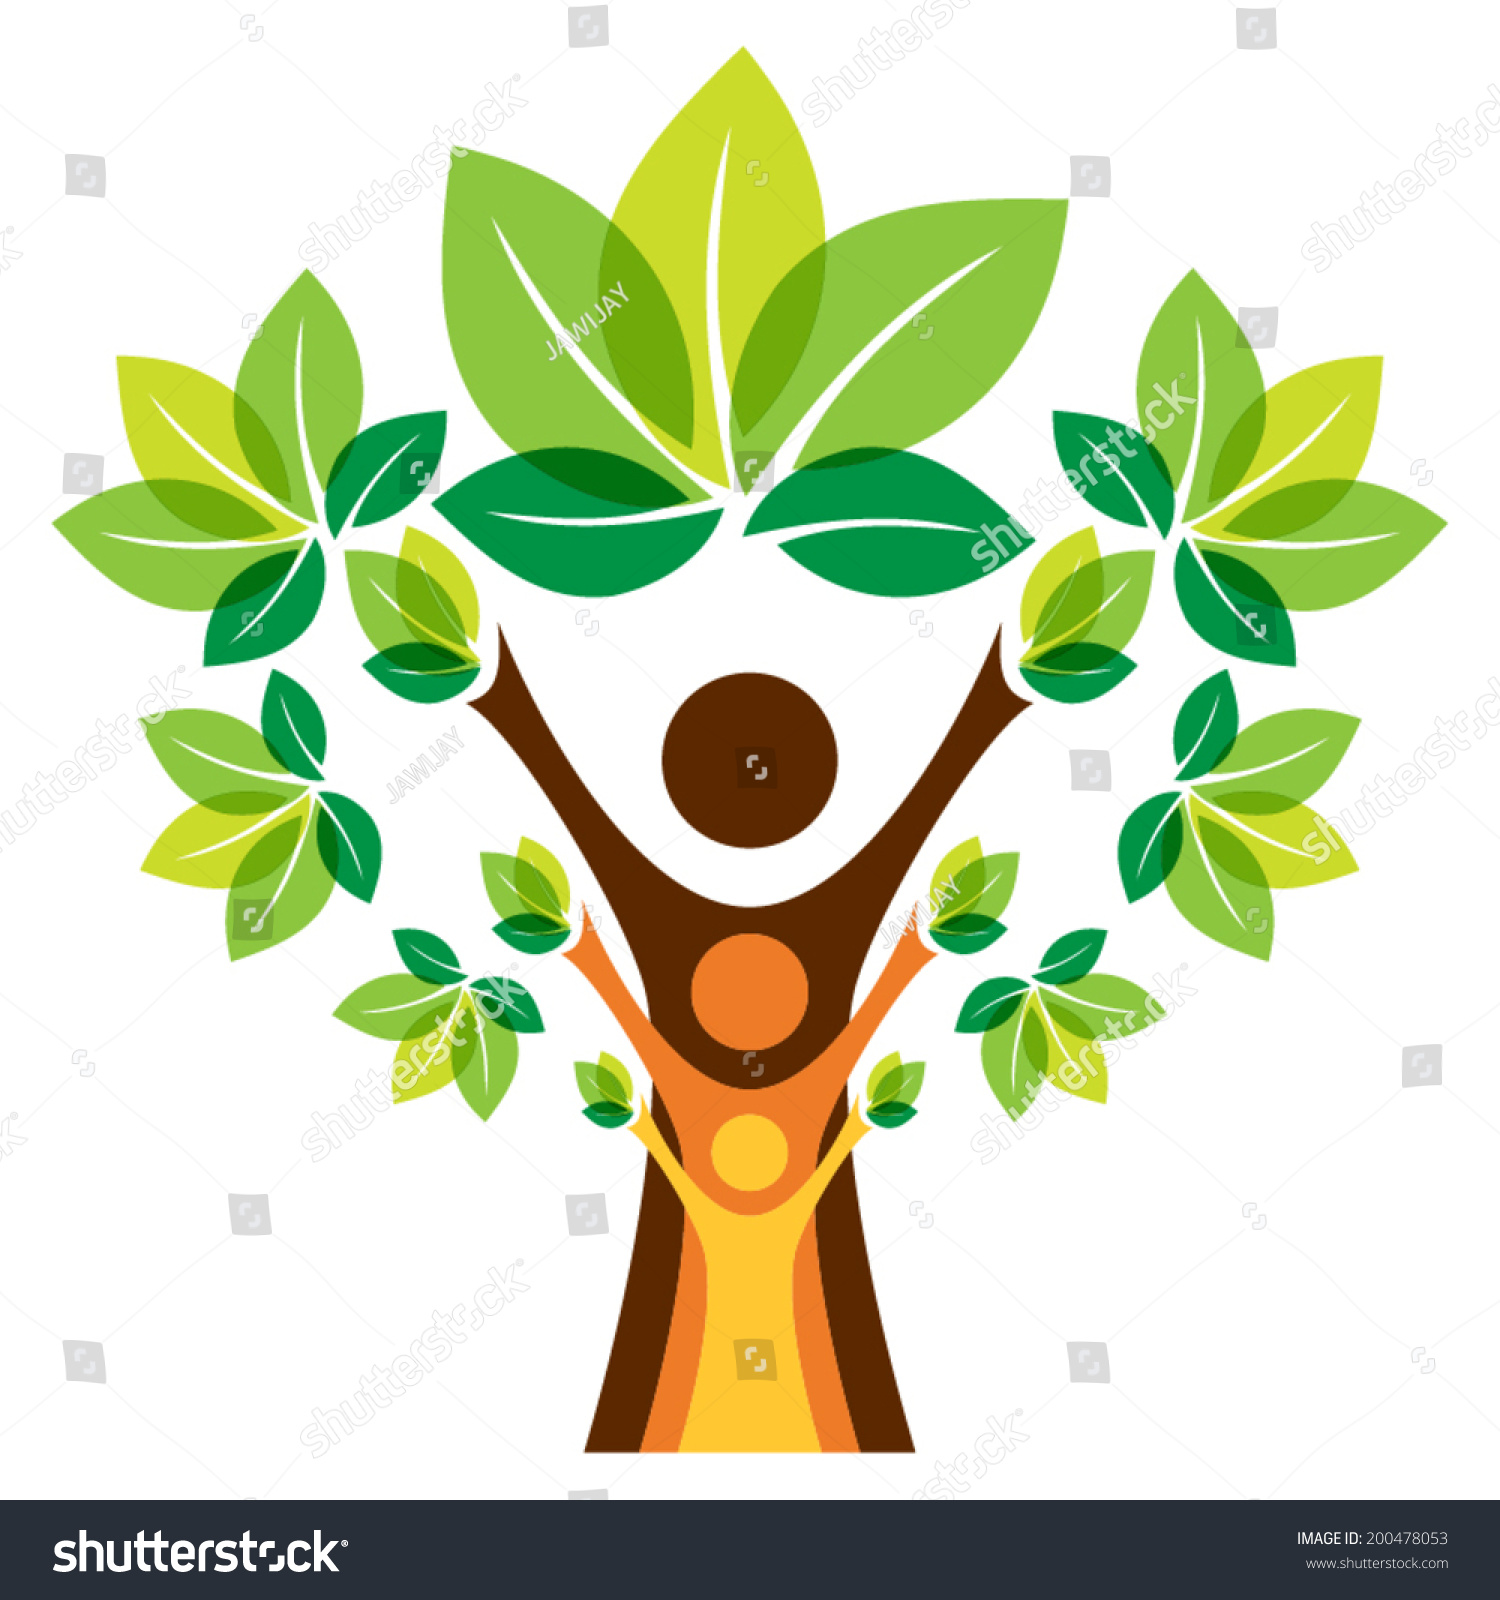 Growing Family Tree Concept Stock Vector 200478053 - Shutterstock